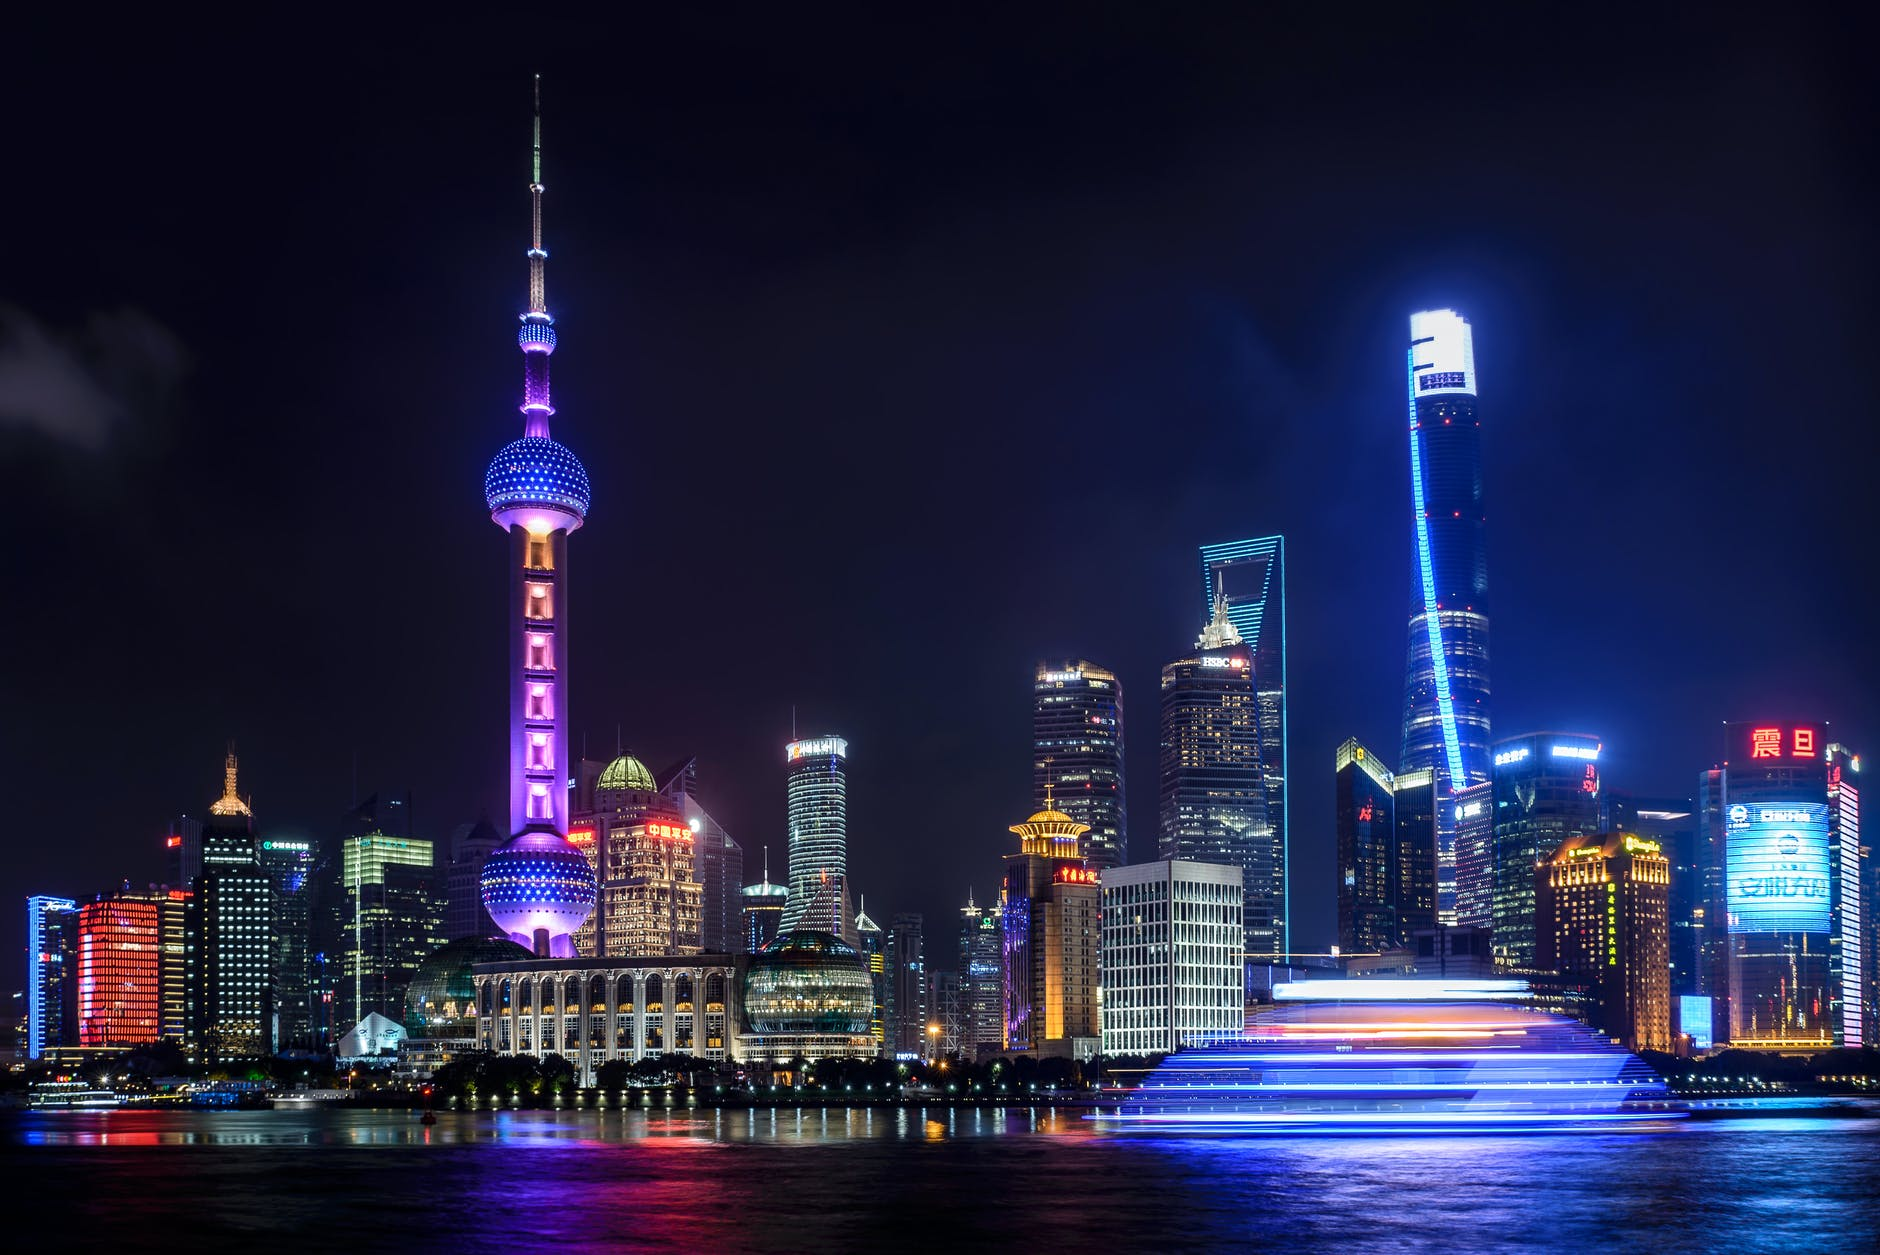 Grab a drink, enjoy Shanghai's night skyline at The Bund. Source: Pexels